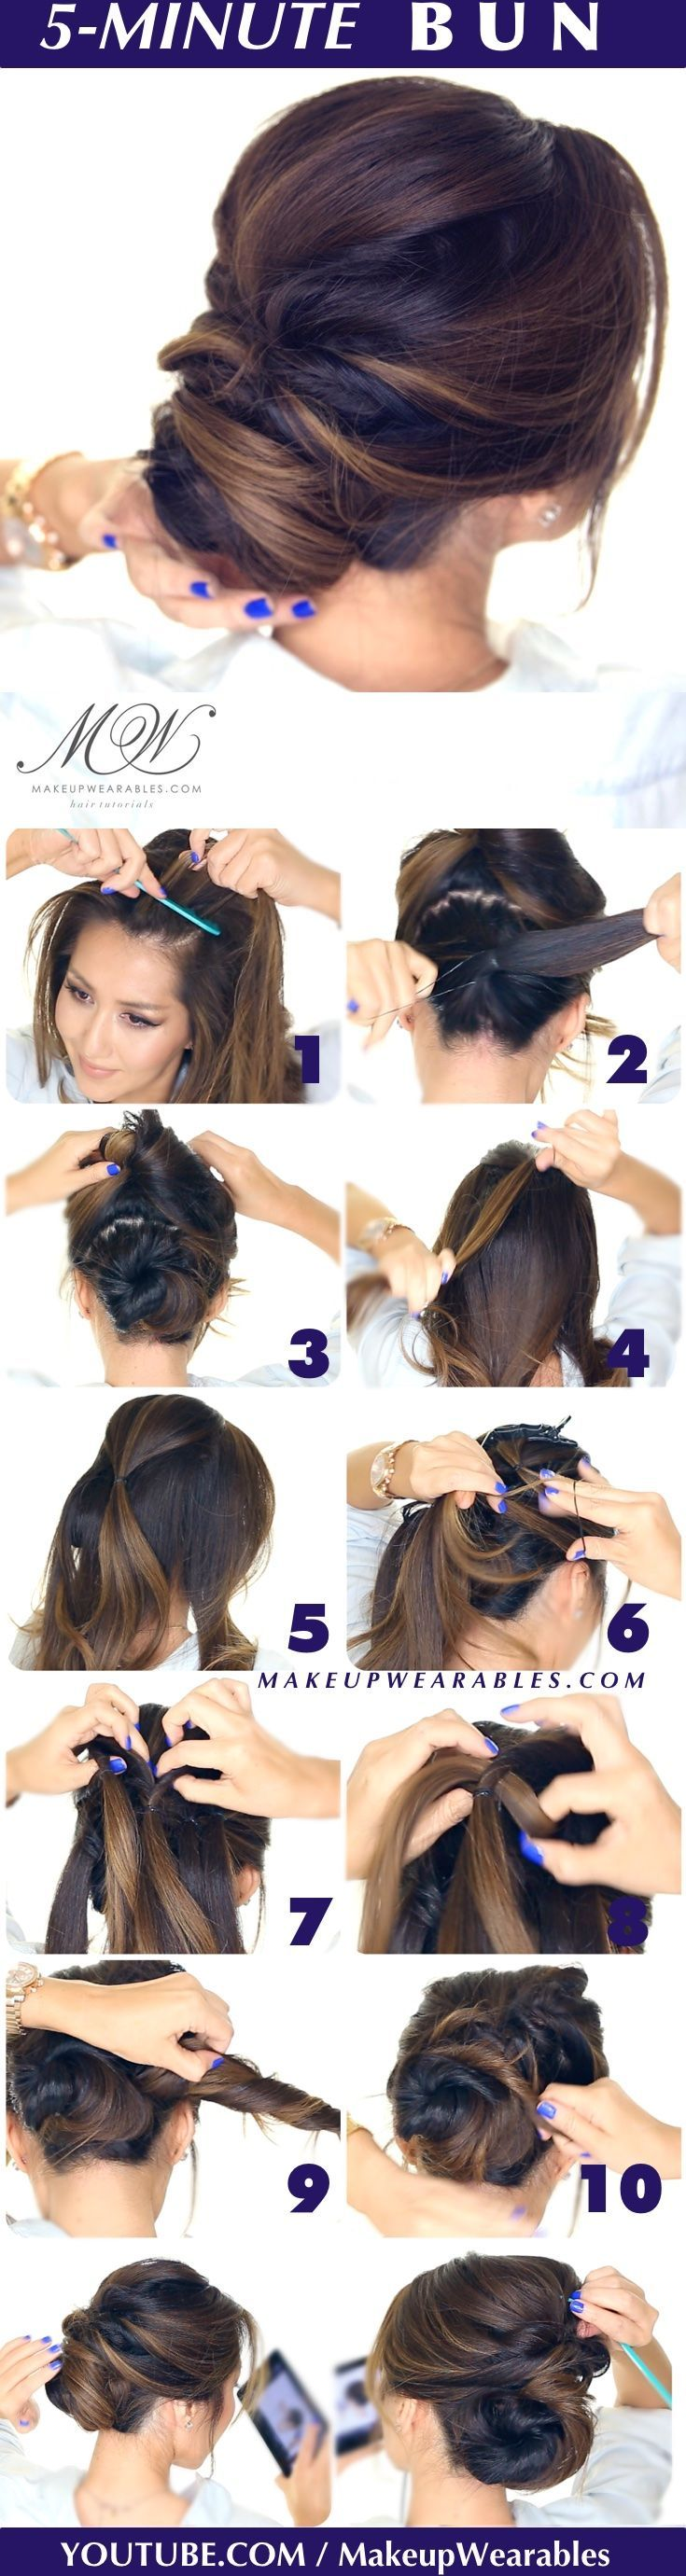 5-Minute Elegant Bun Tutorial | Click to watch | #hairstyles